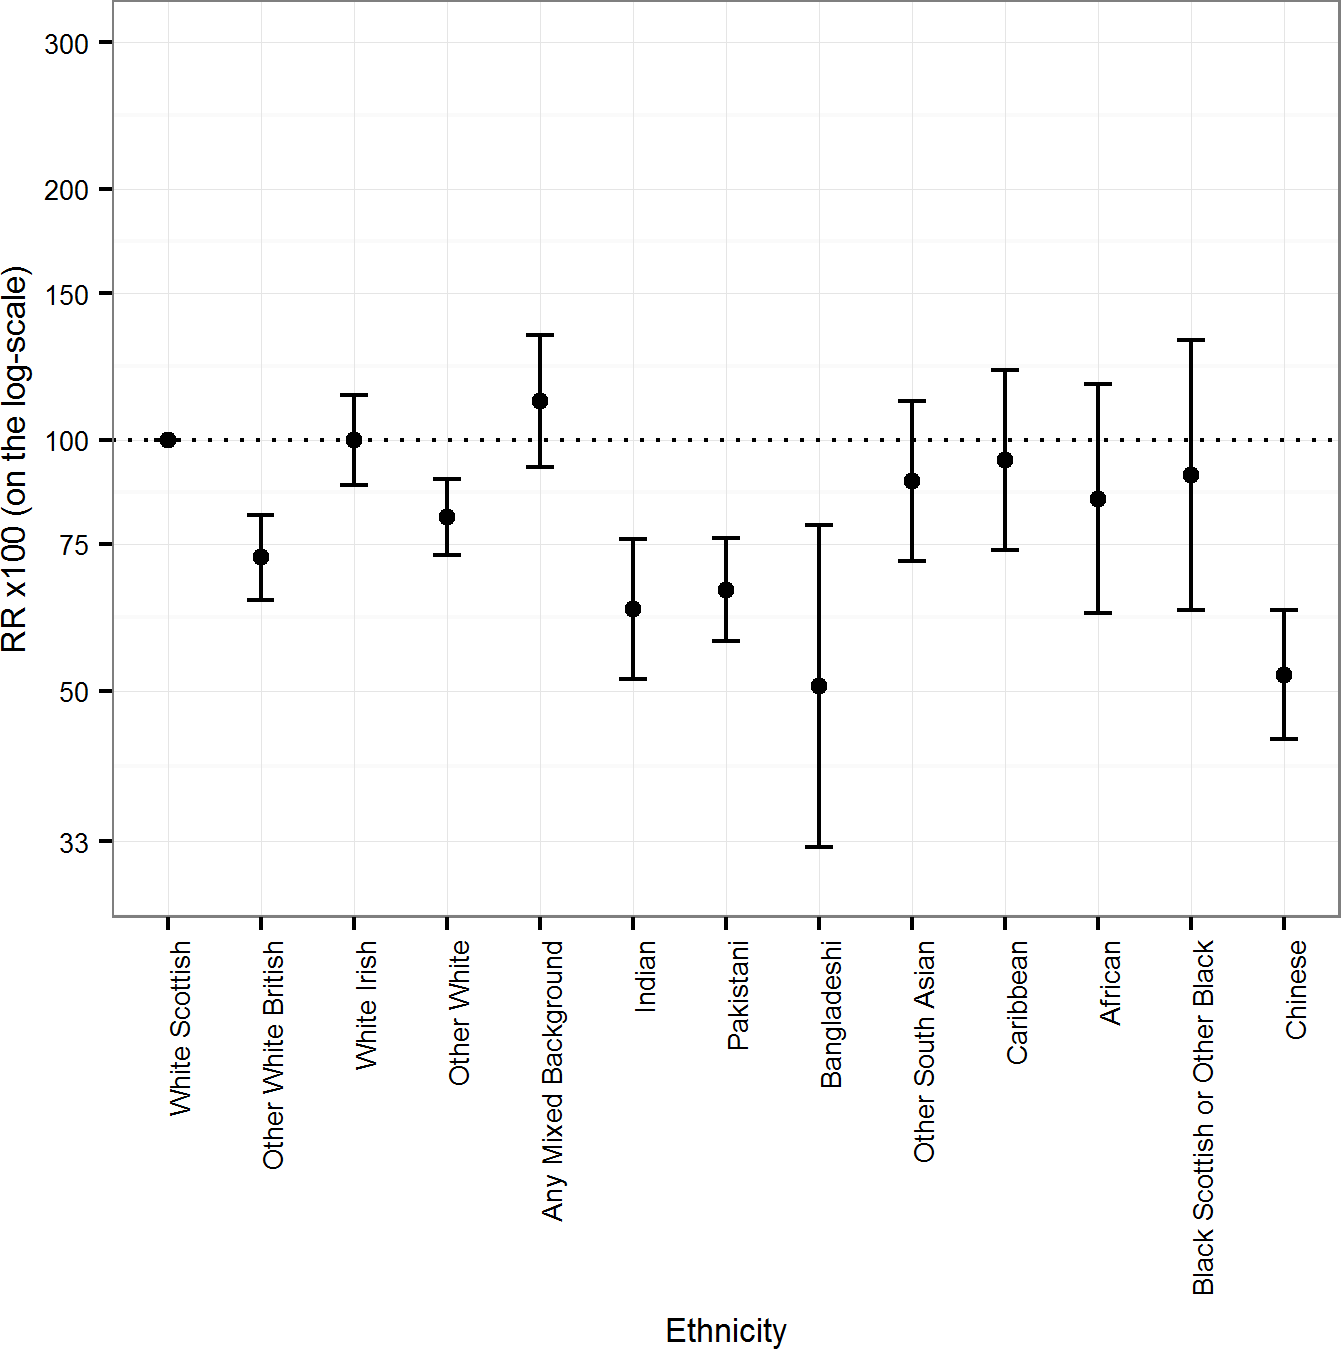 Age-adjusted rate ratios (RRs) (bars show 95% CIs) for all-cause mortality by ethnicity in males.